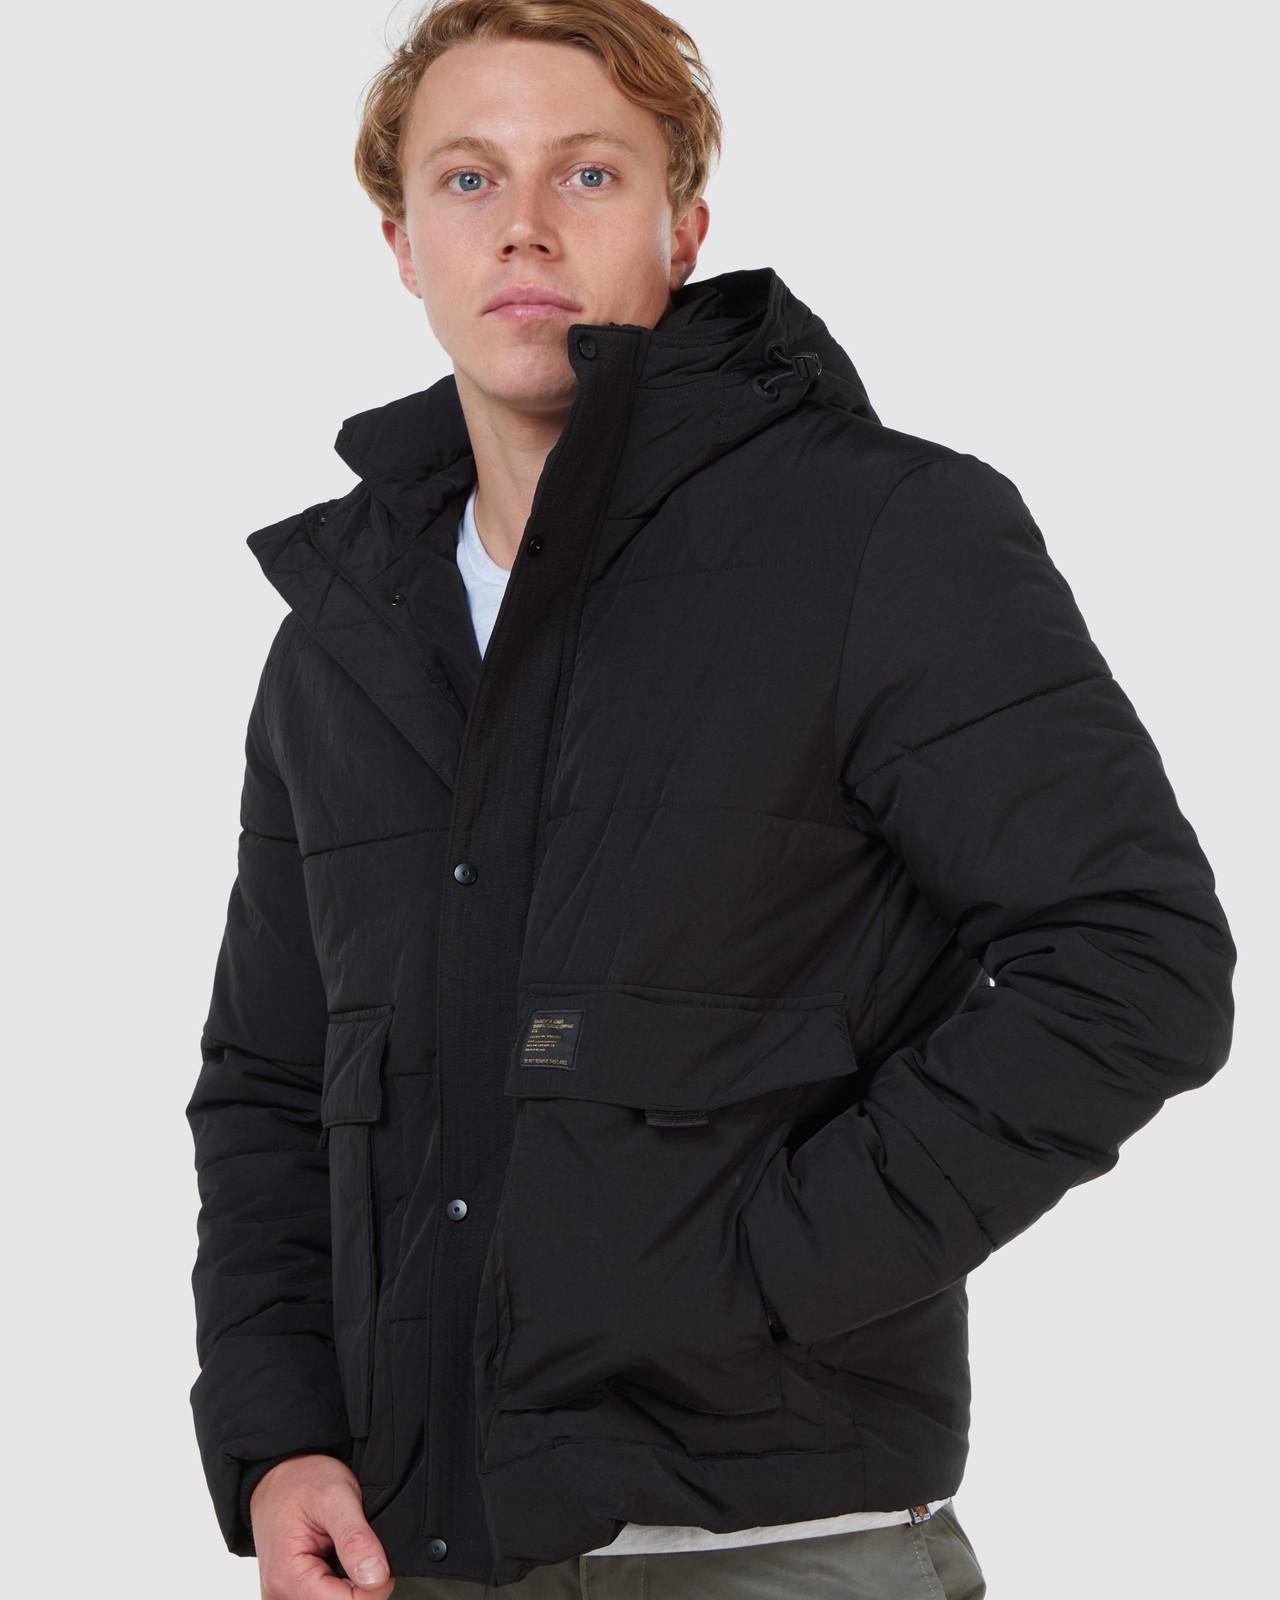 Superdry Mens PIVOT JACKET Black Puffer Jackets 8